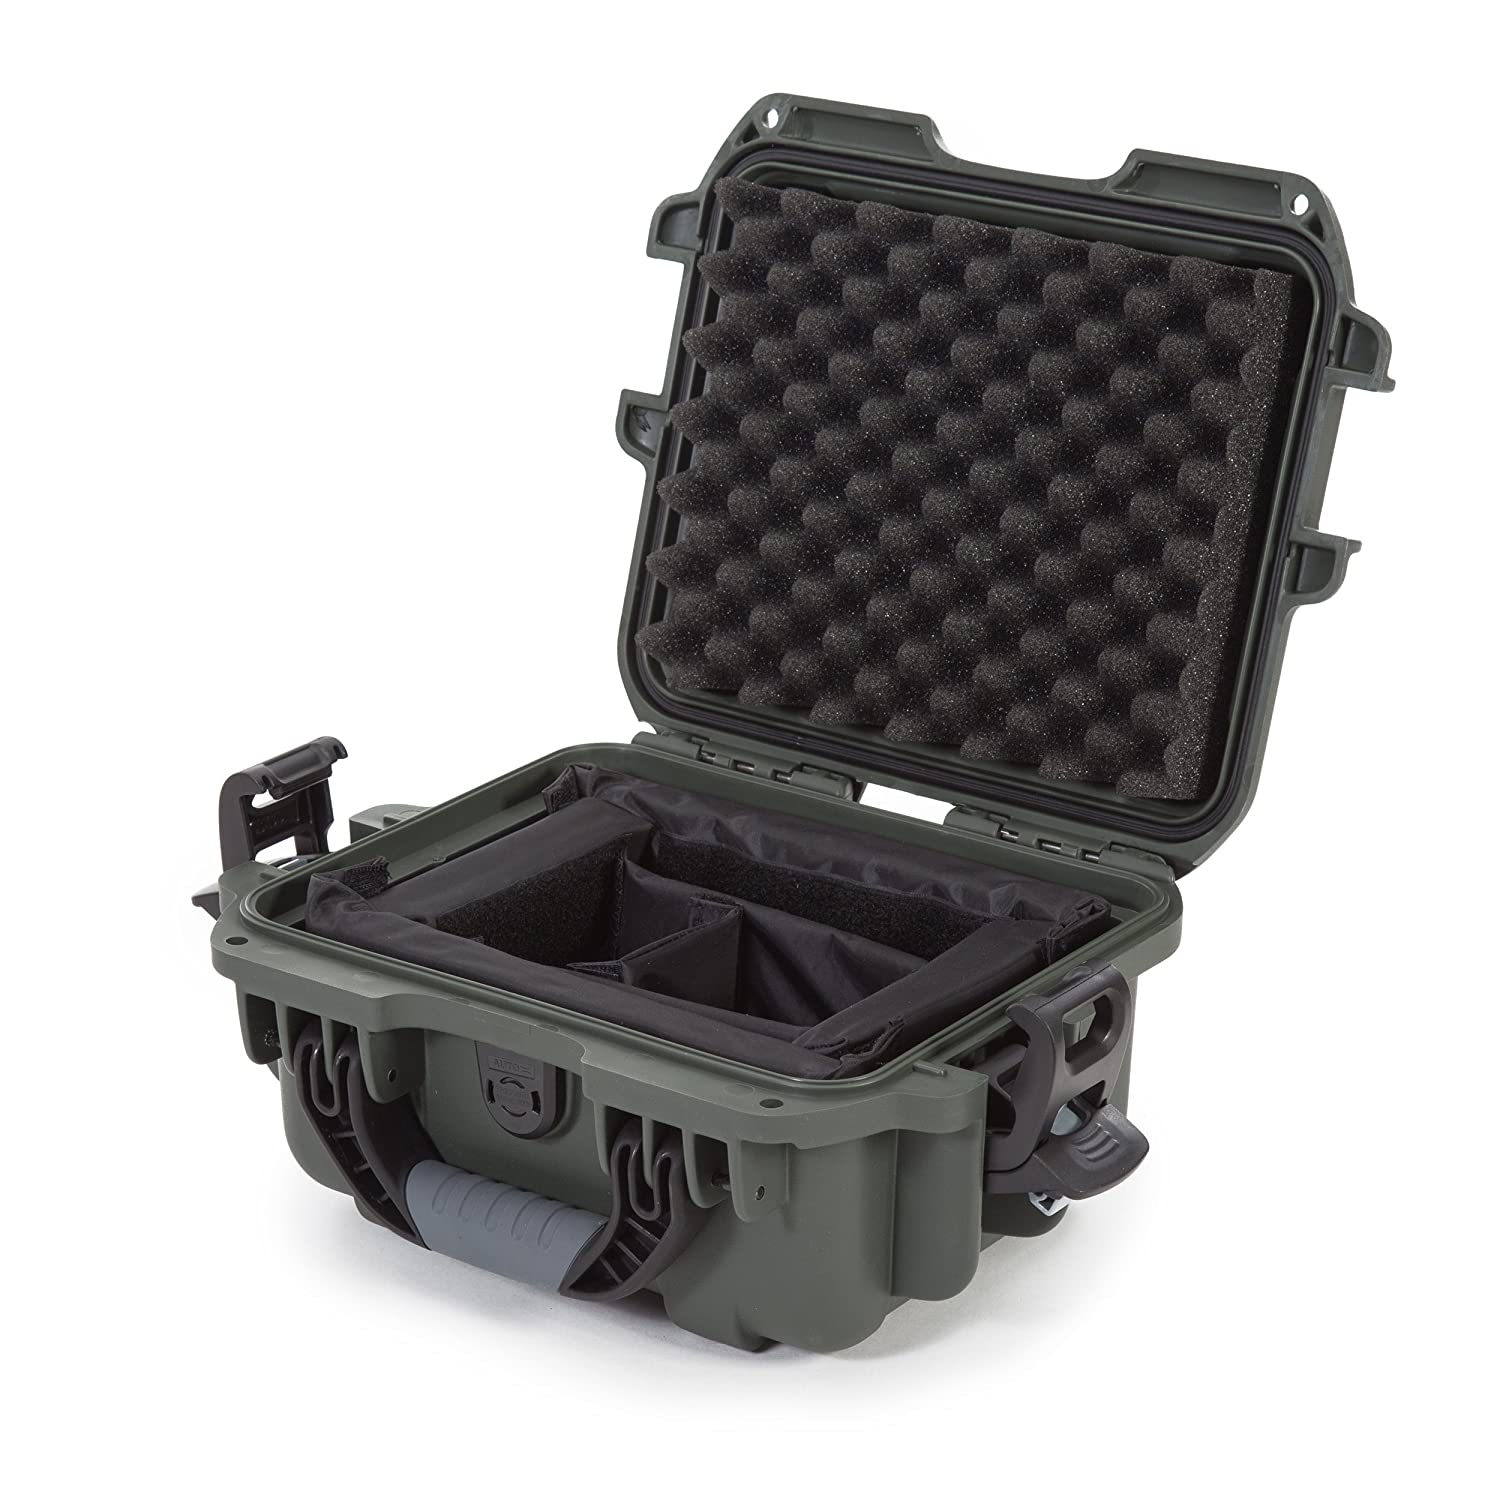 Nanuk 905 Waterproof Hard Case with Padded Dividers - Olive Plasticase Inc 905-2006